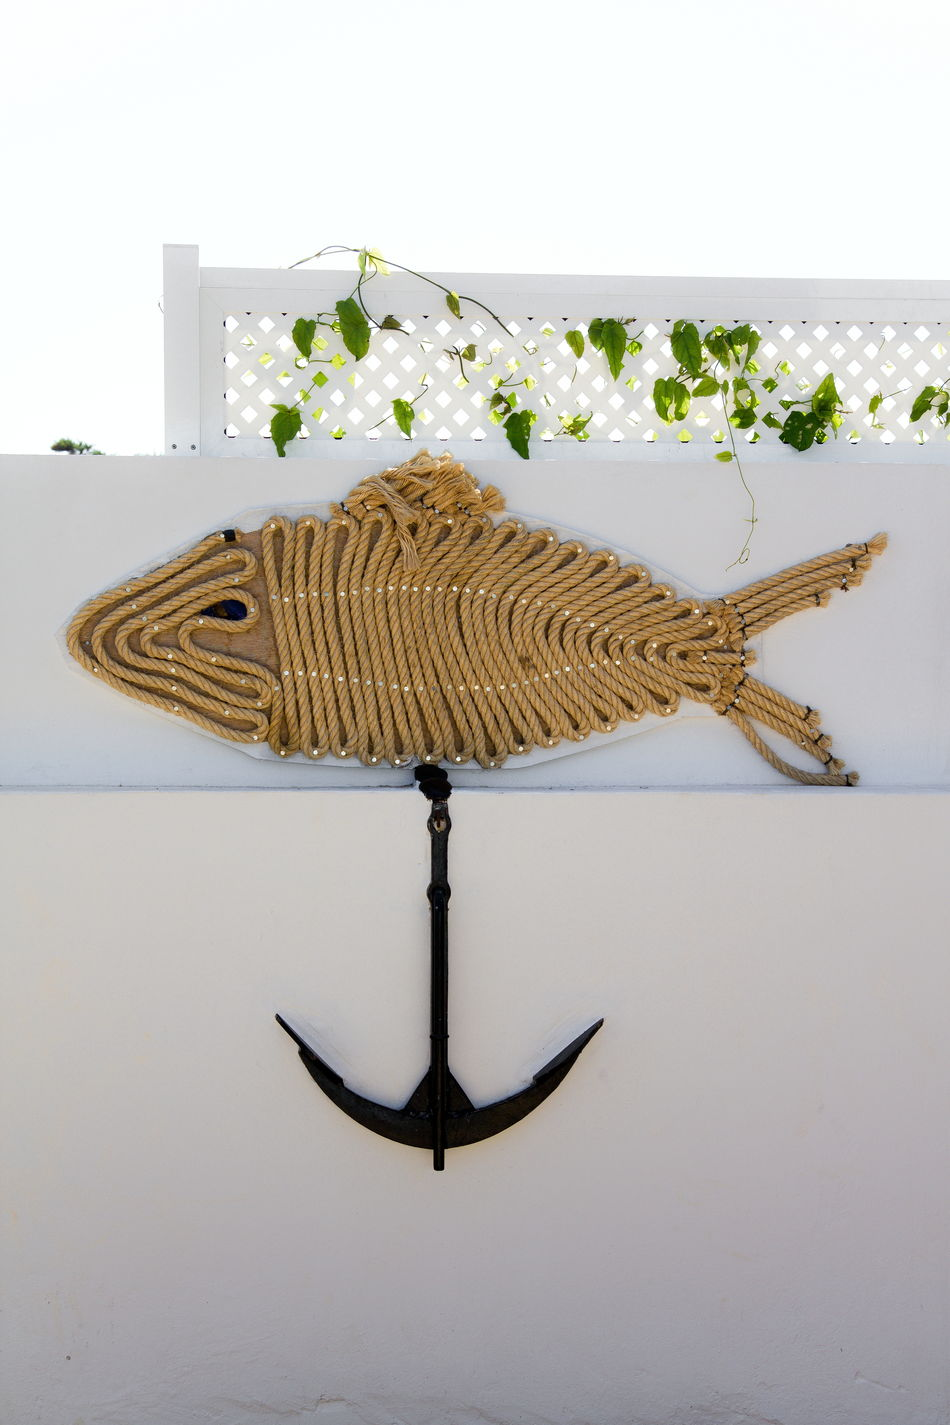 Cord Fish Anchor Art Art And Craft Close-up Cord Cord Fish Creativity Decoration Drawstring Fish Flower Sea Still Life Wall Wall Decoration White Background White Wall